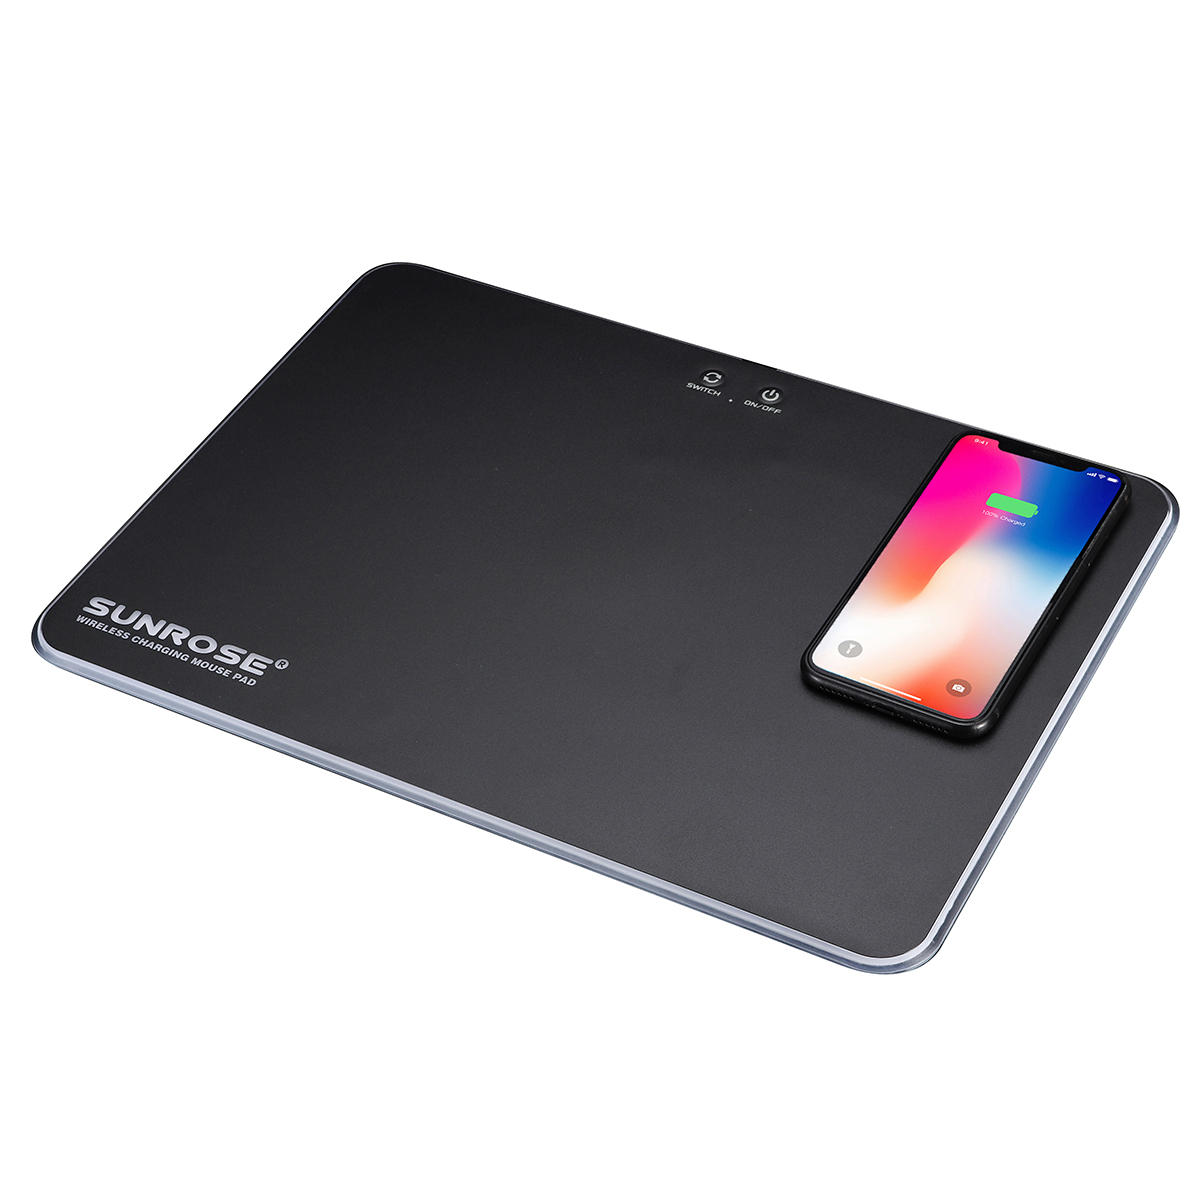 SUNROSE MP-100 RGB light Computer USB Wireless Charger Game Mouse Pad Support for Samsung 10W/ IPhone 7.5W Quick Charge New